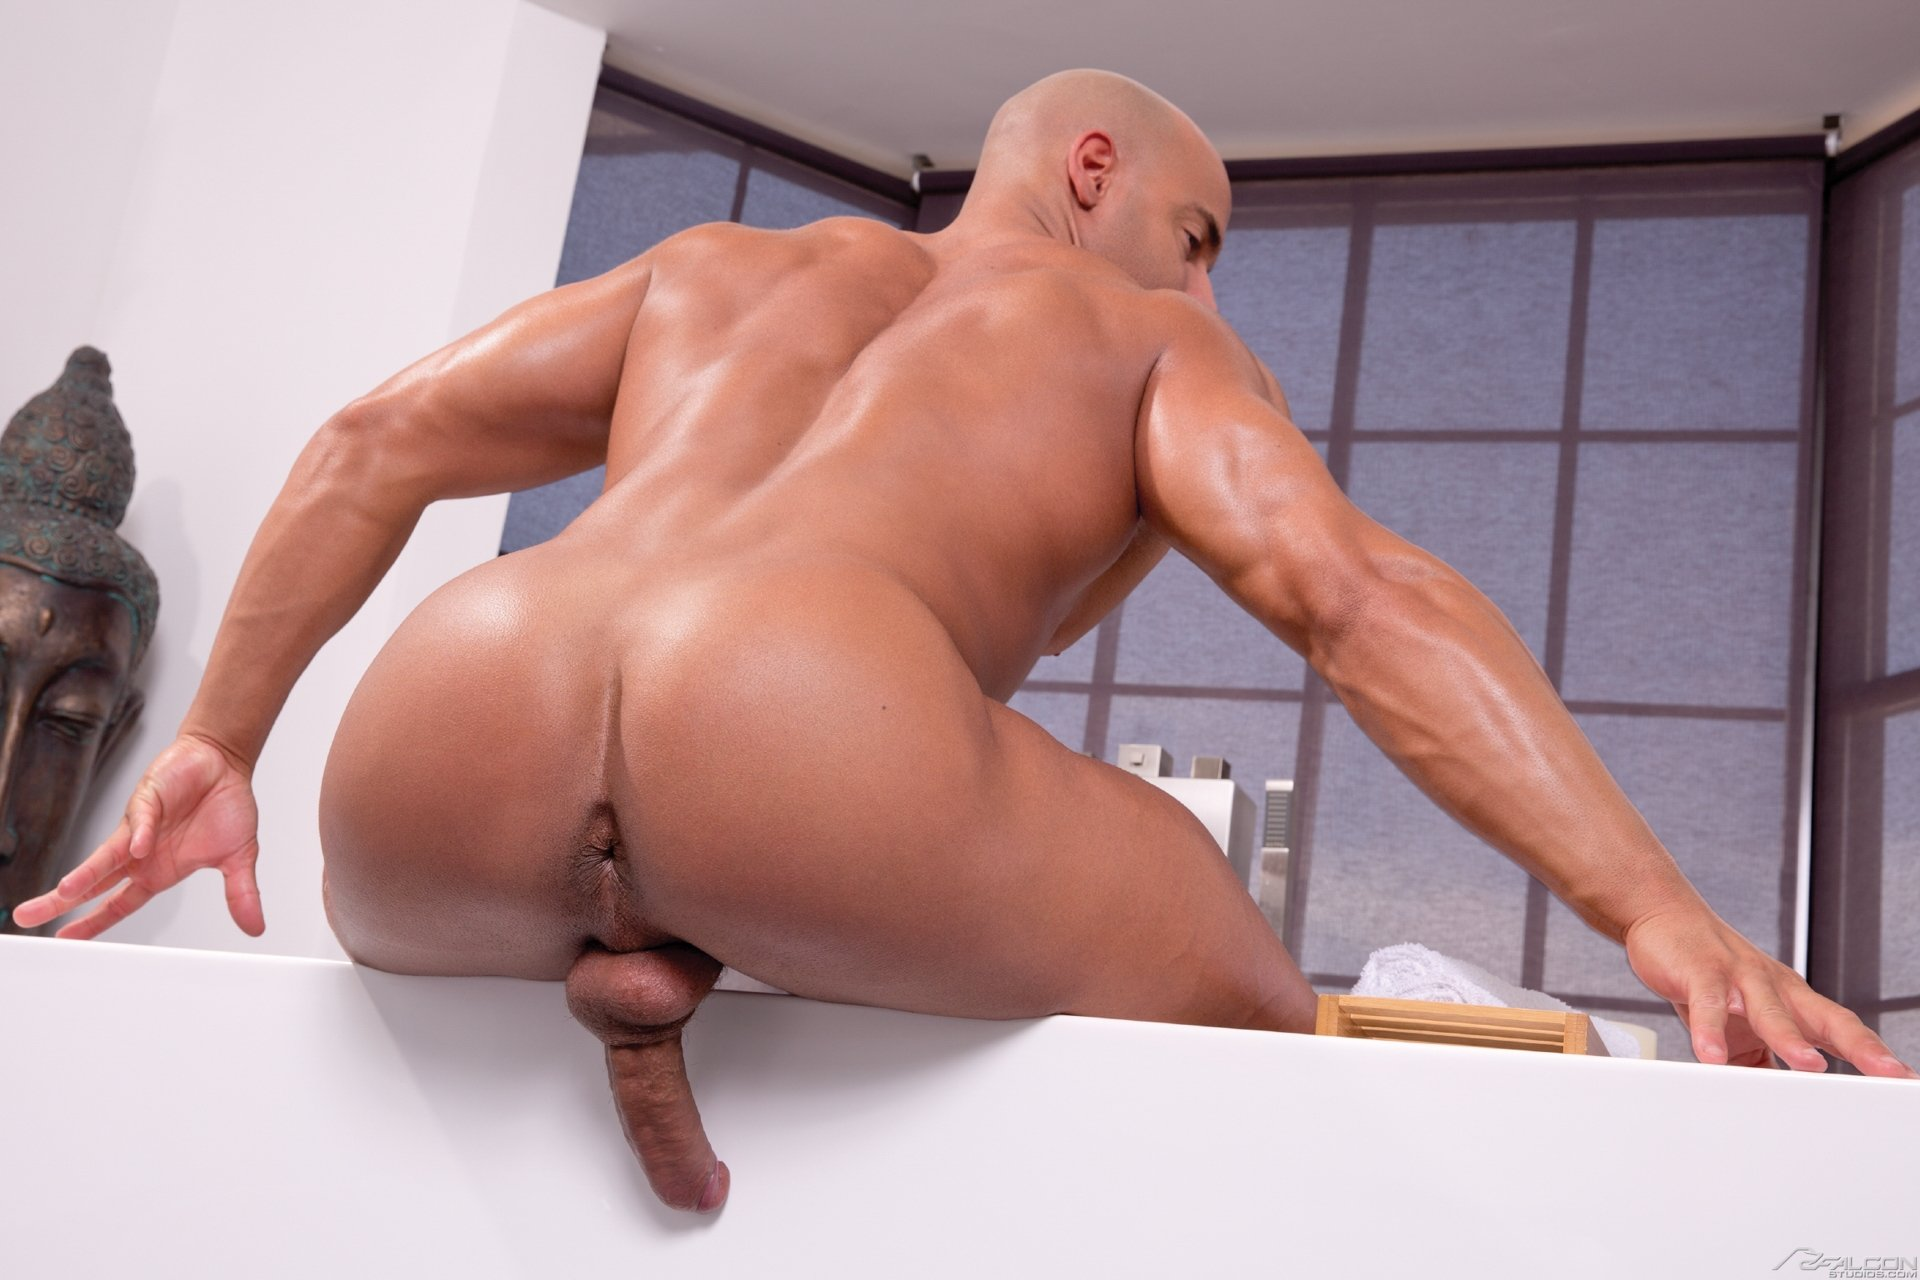 tantric massage pics free homoseksuell online meet and fuck